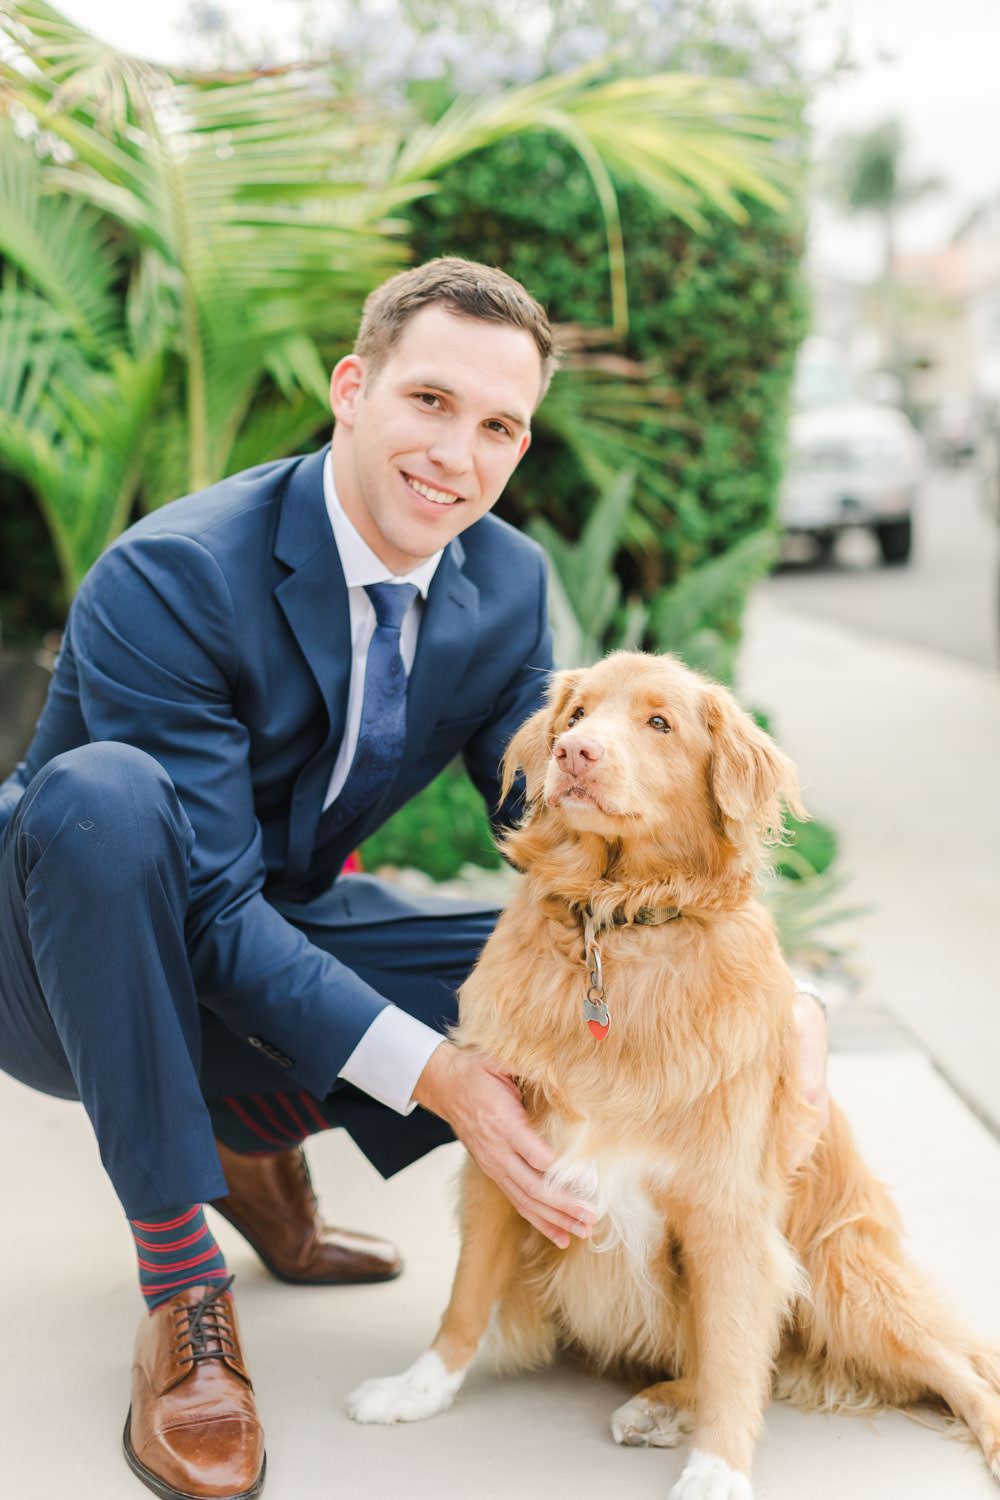 Groom with dog for engagement session, Cavin Elizabeth Photography